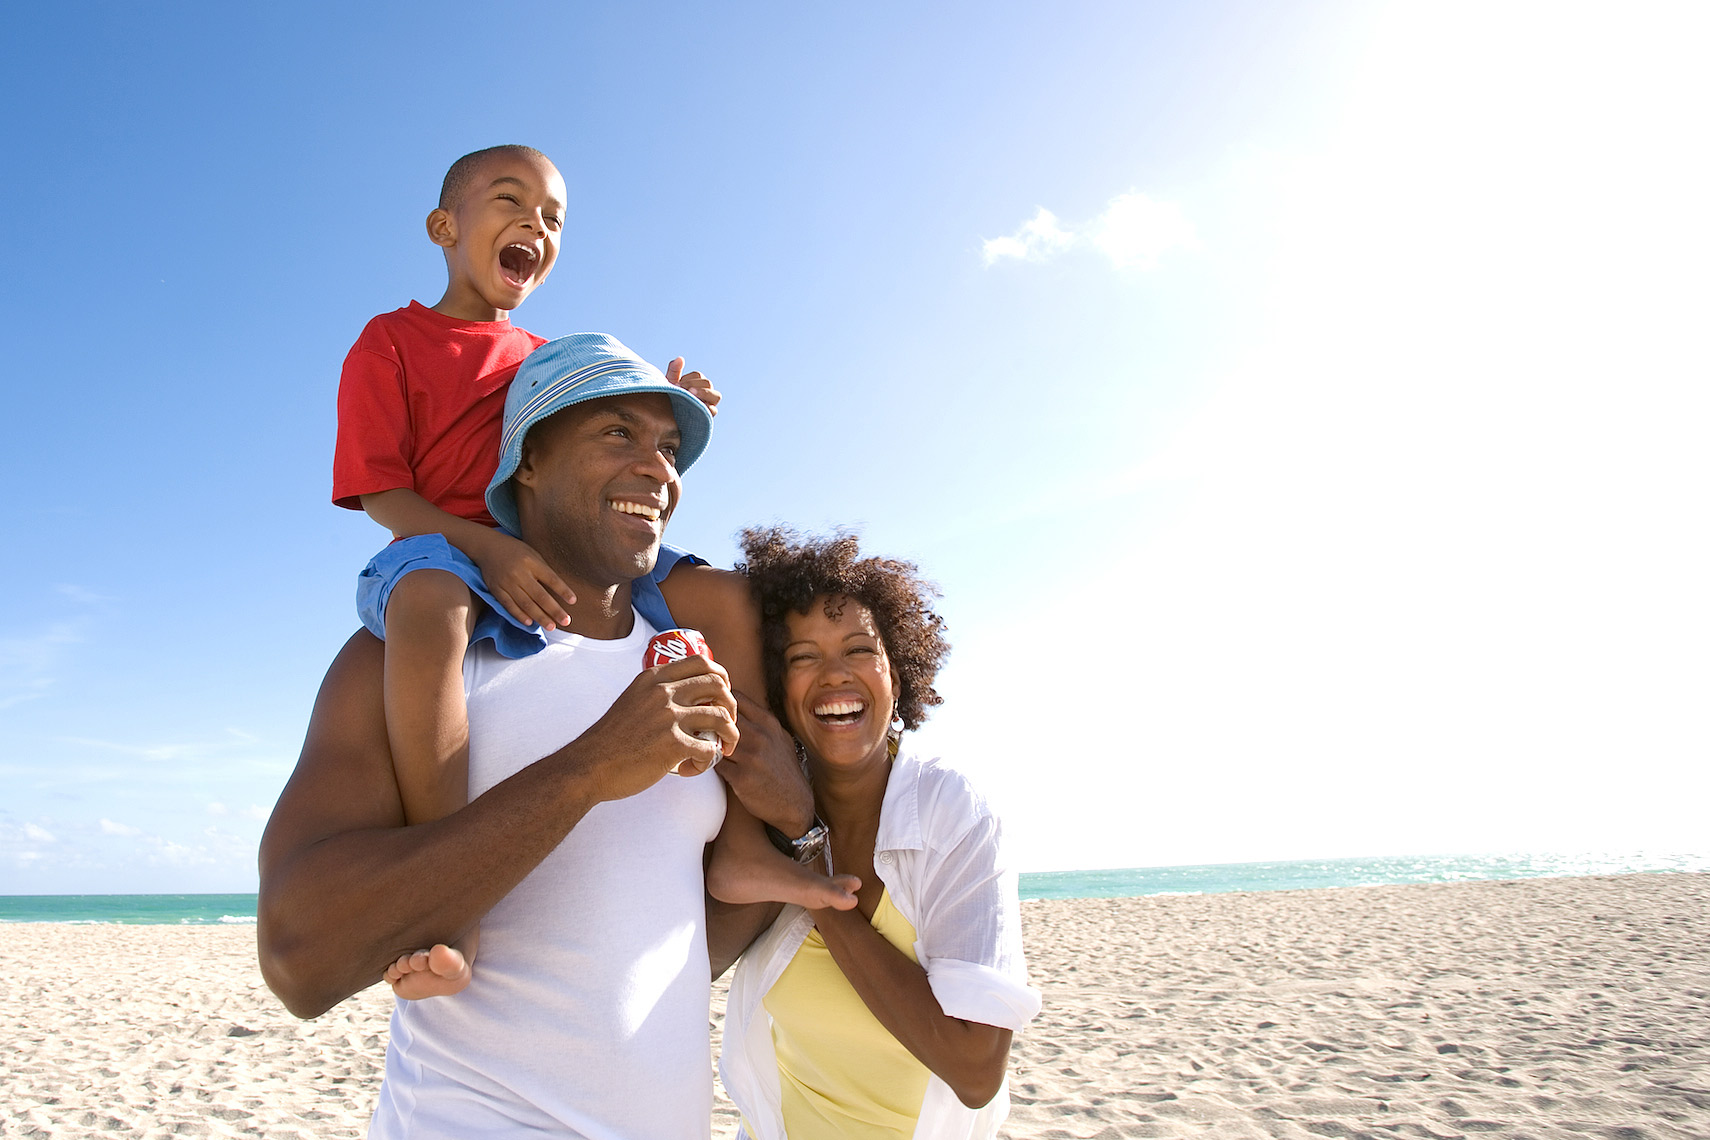 African American family walking on beach with Coca-Cola, Miami_family on beach_Robert_Holland.jpg